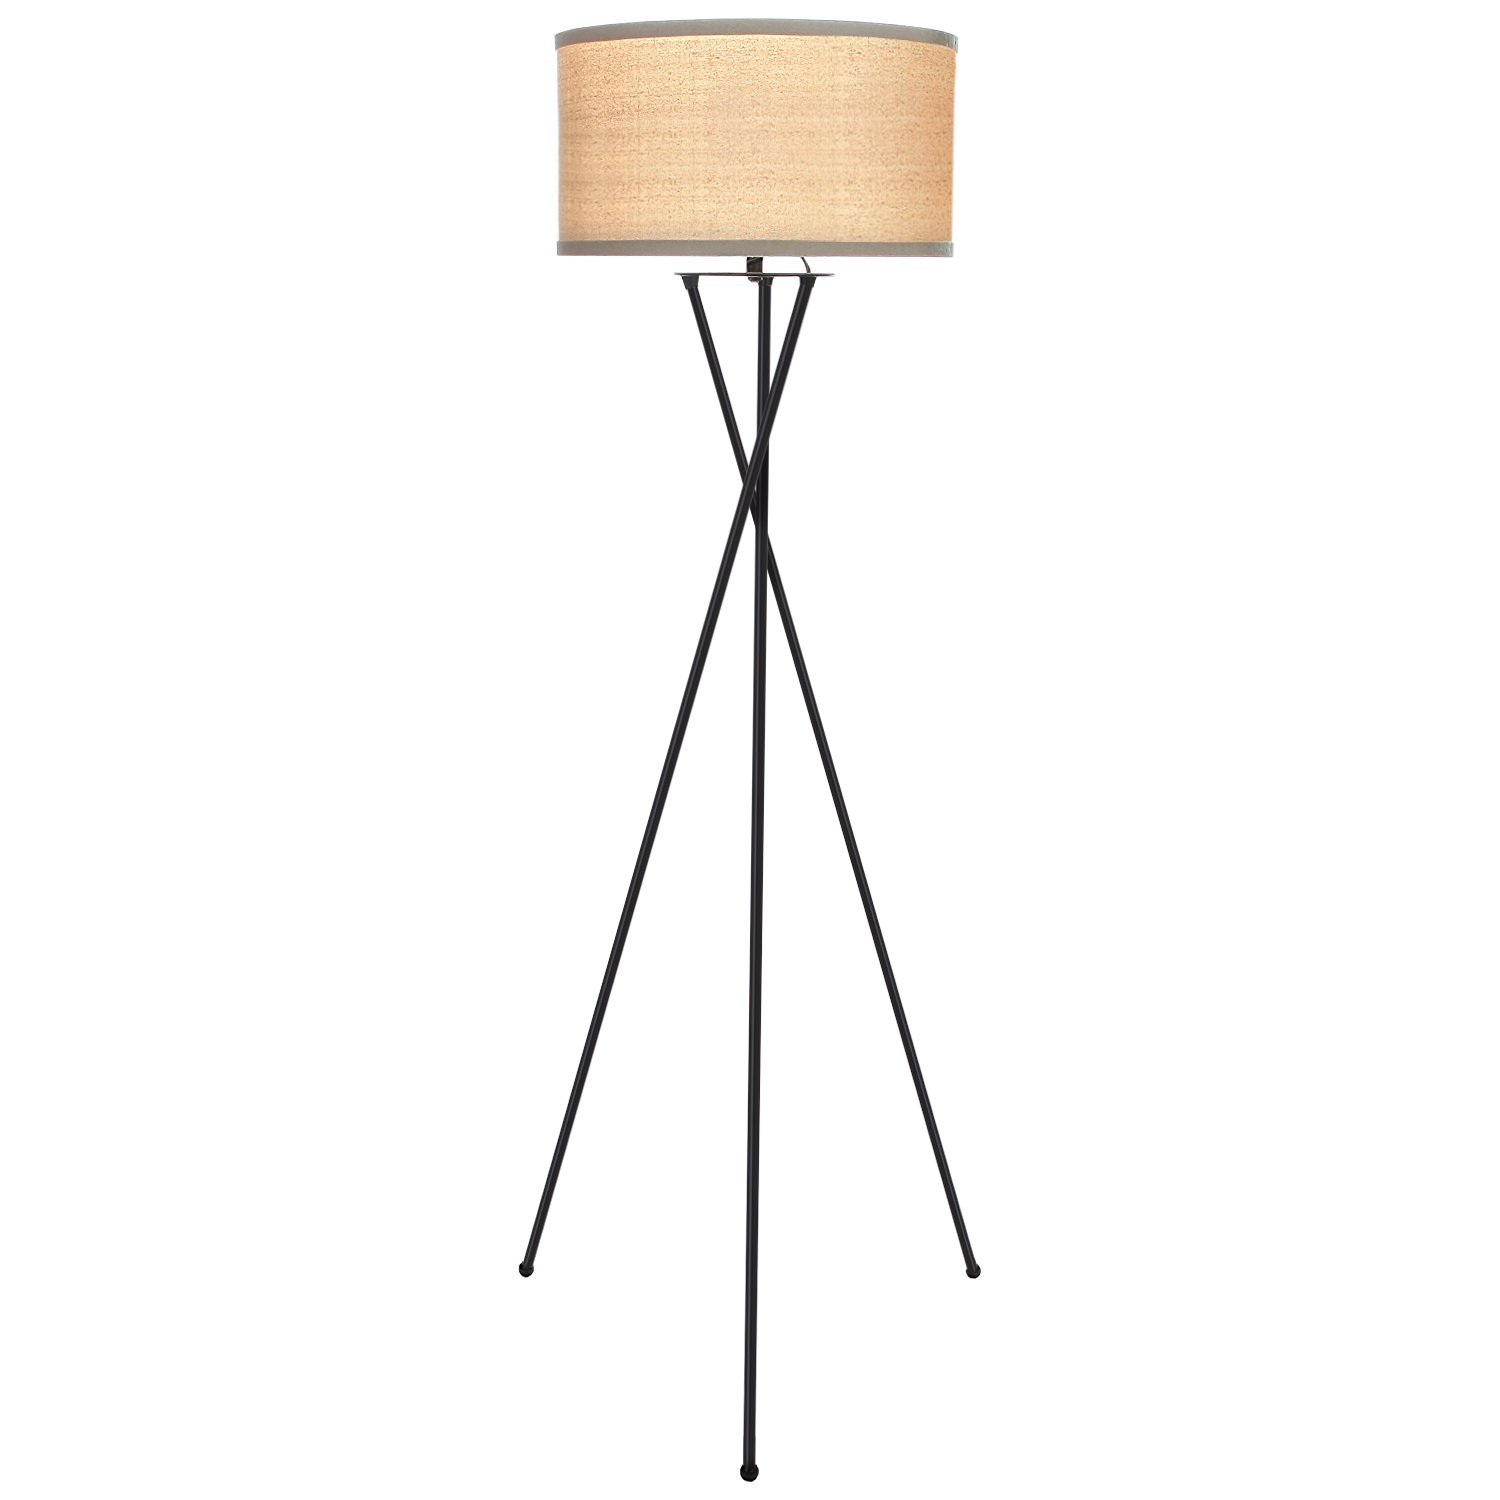 Brightech Jaxon Tripod LED Floor Lamp – Mid Century Modern Living Room Standing Light - Works with Alexa – Tall Contemporary Drum Shade Uplight and Downlight for Bedroom or Office – Black